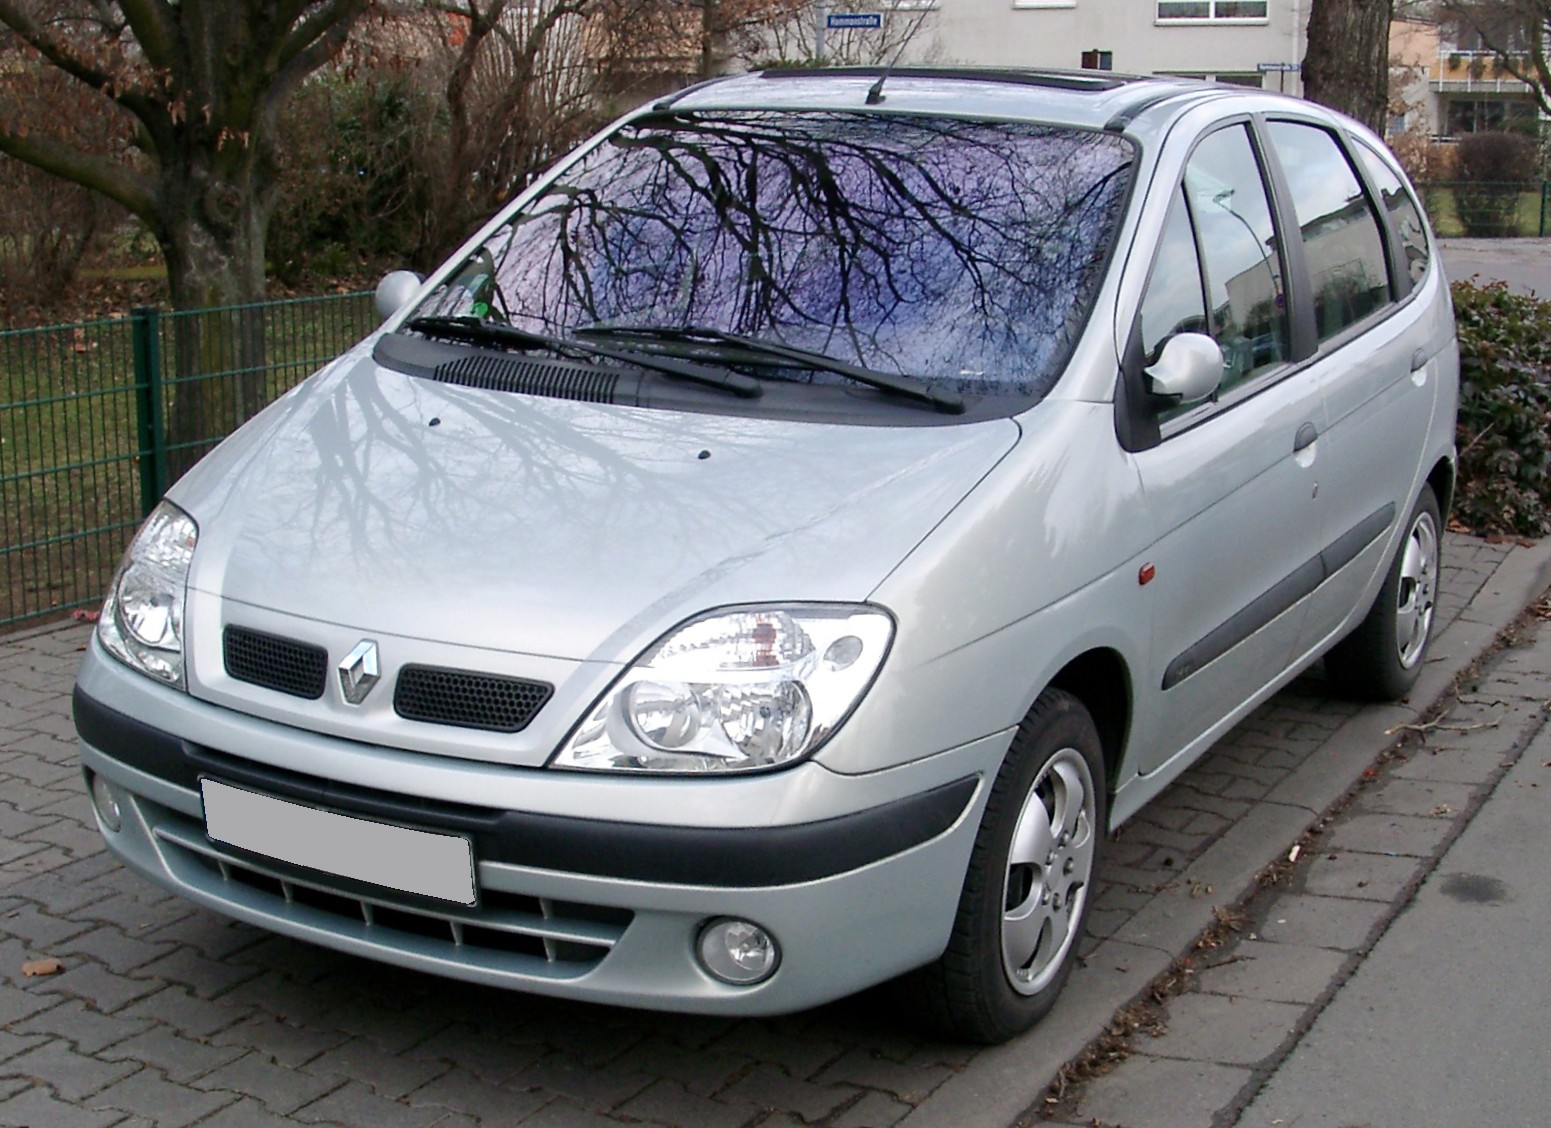 File:Renault Scenic front 20080102.jpg - Wikimedia Commons